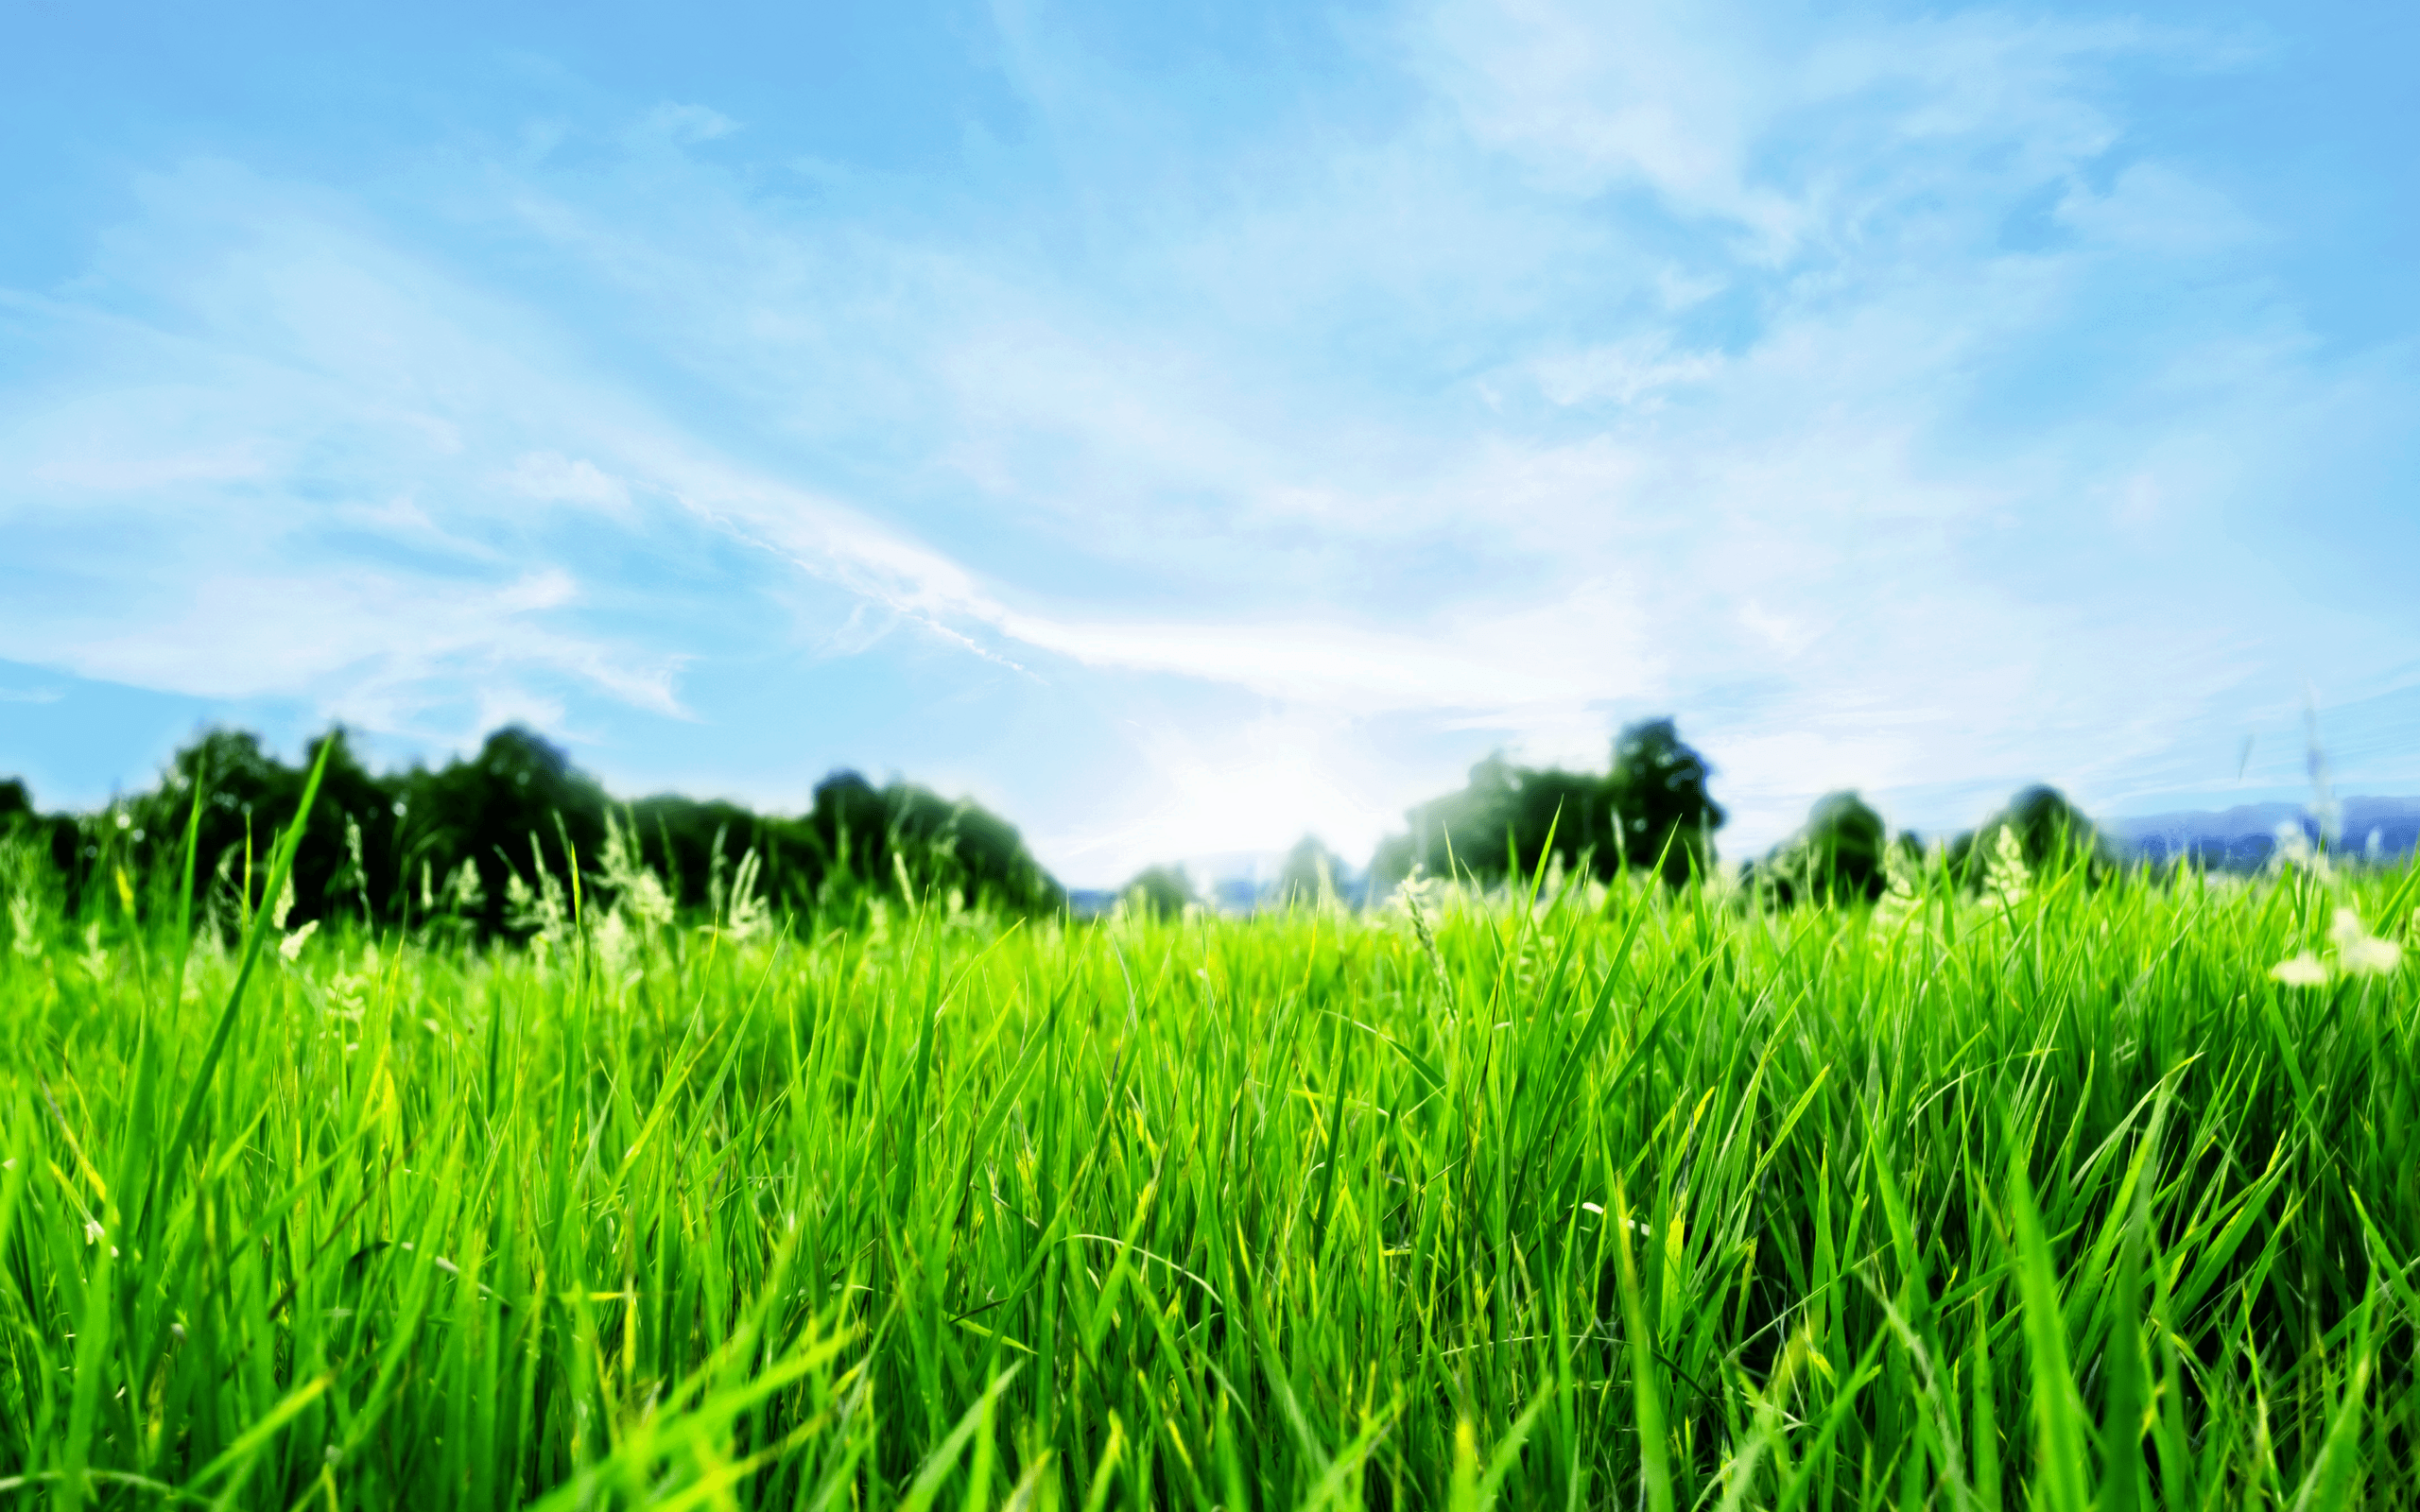 Lawn Wallpapers Wallpaper Cave